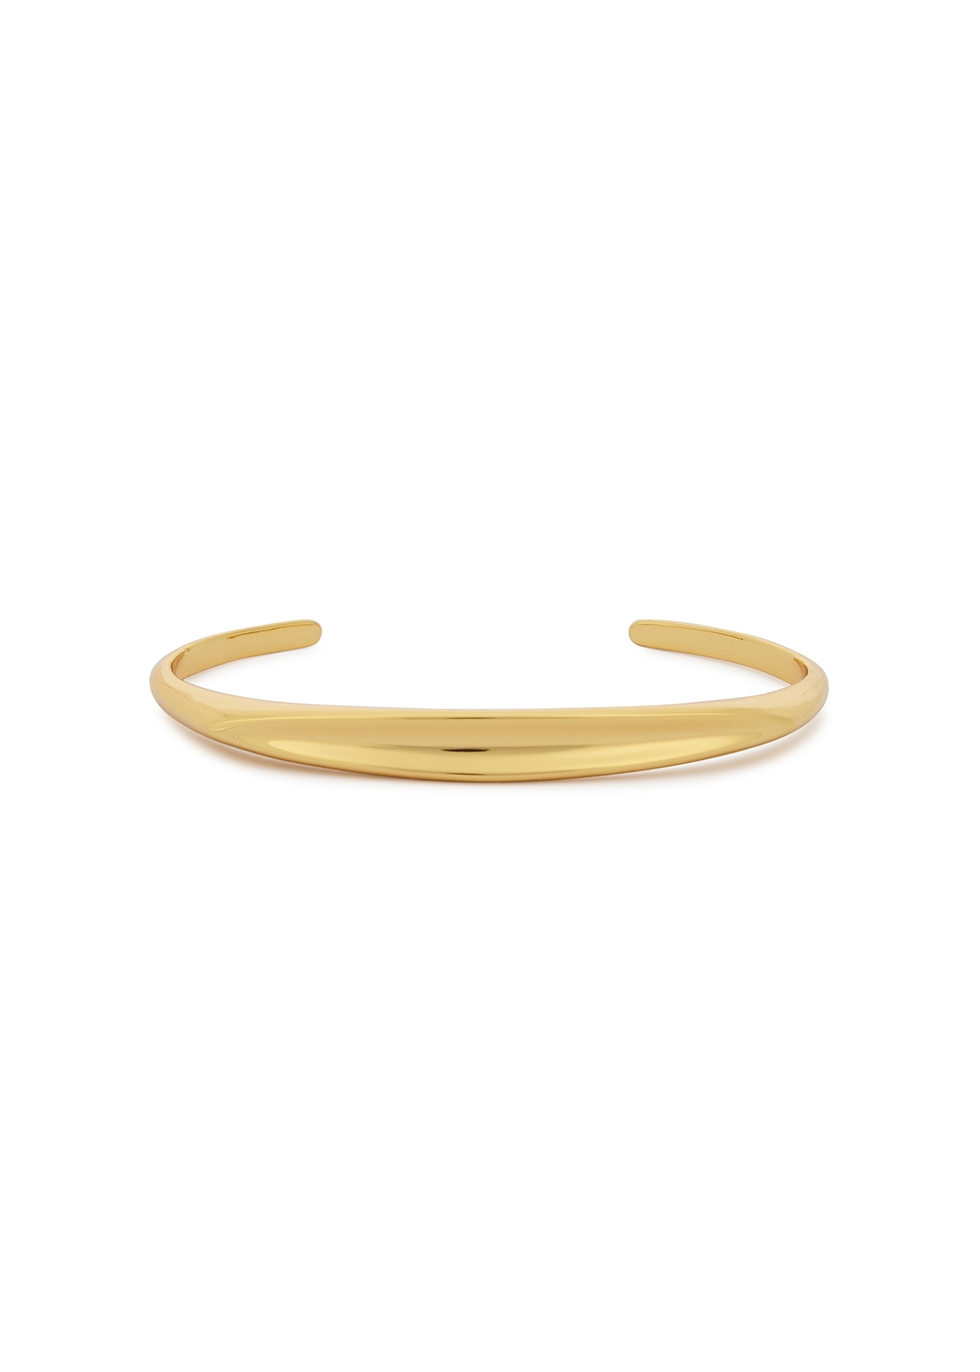 Groove 14kt gold-dipped cuff bracelet